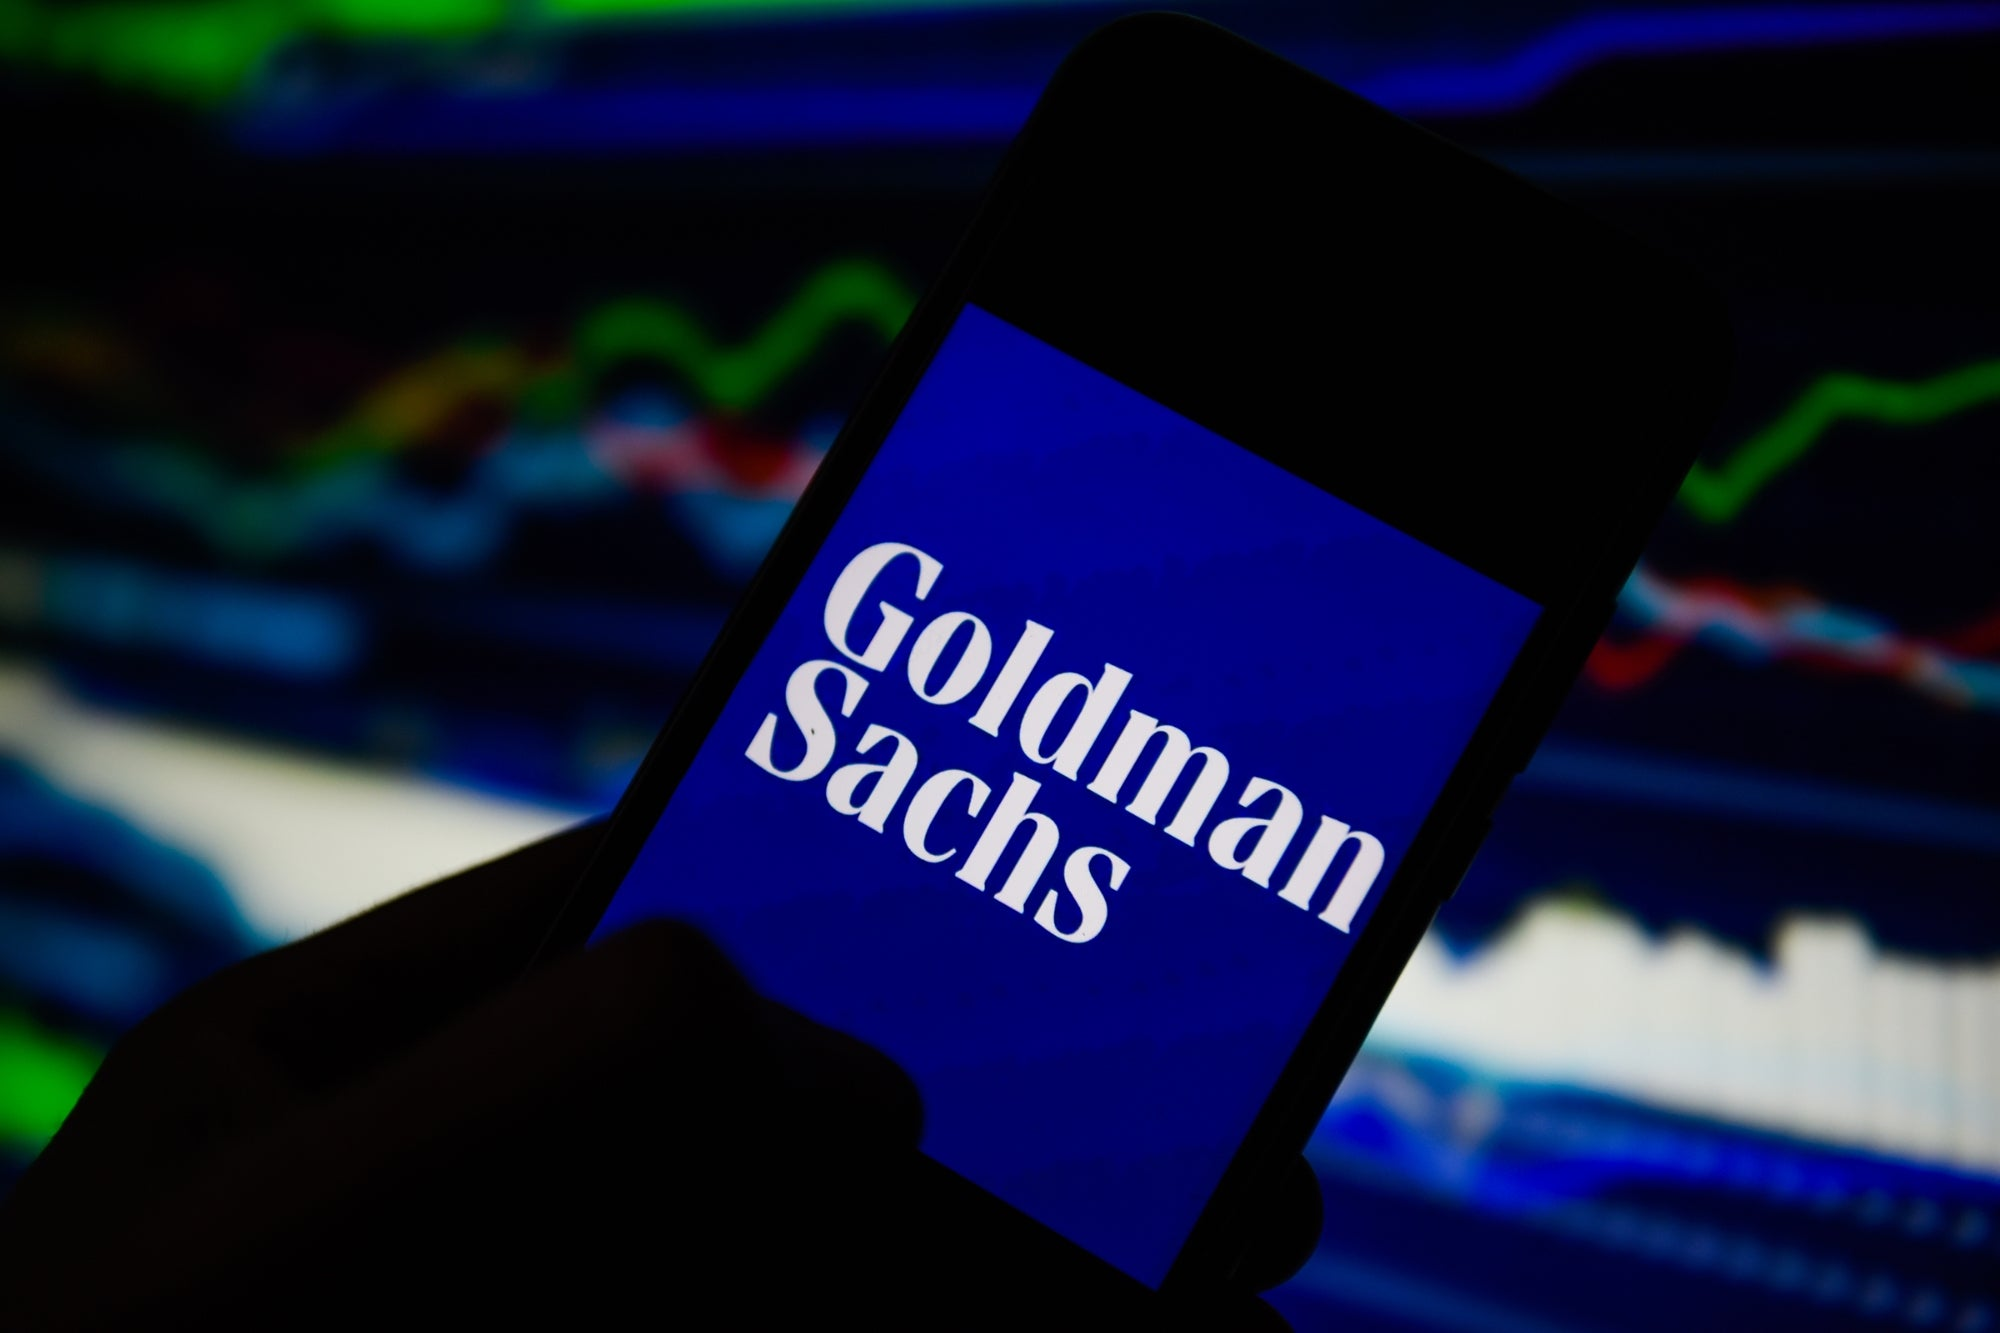 Goldman Sachs Releases Diversity Data on Leadership Makeup, And the Numbers Aren't Promising